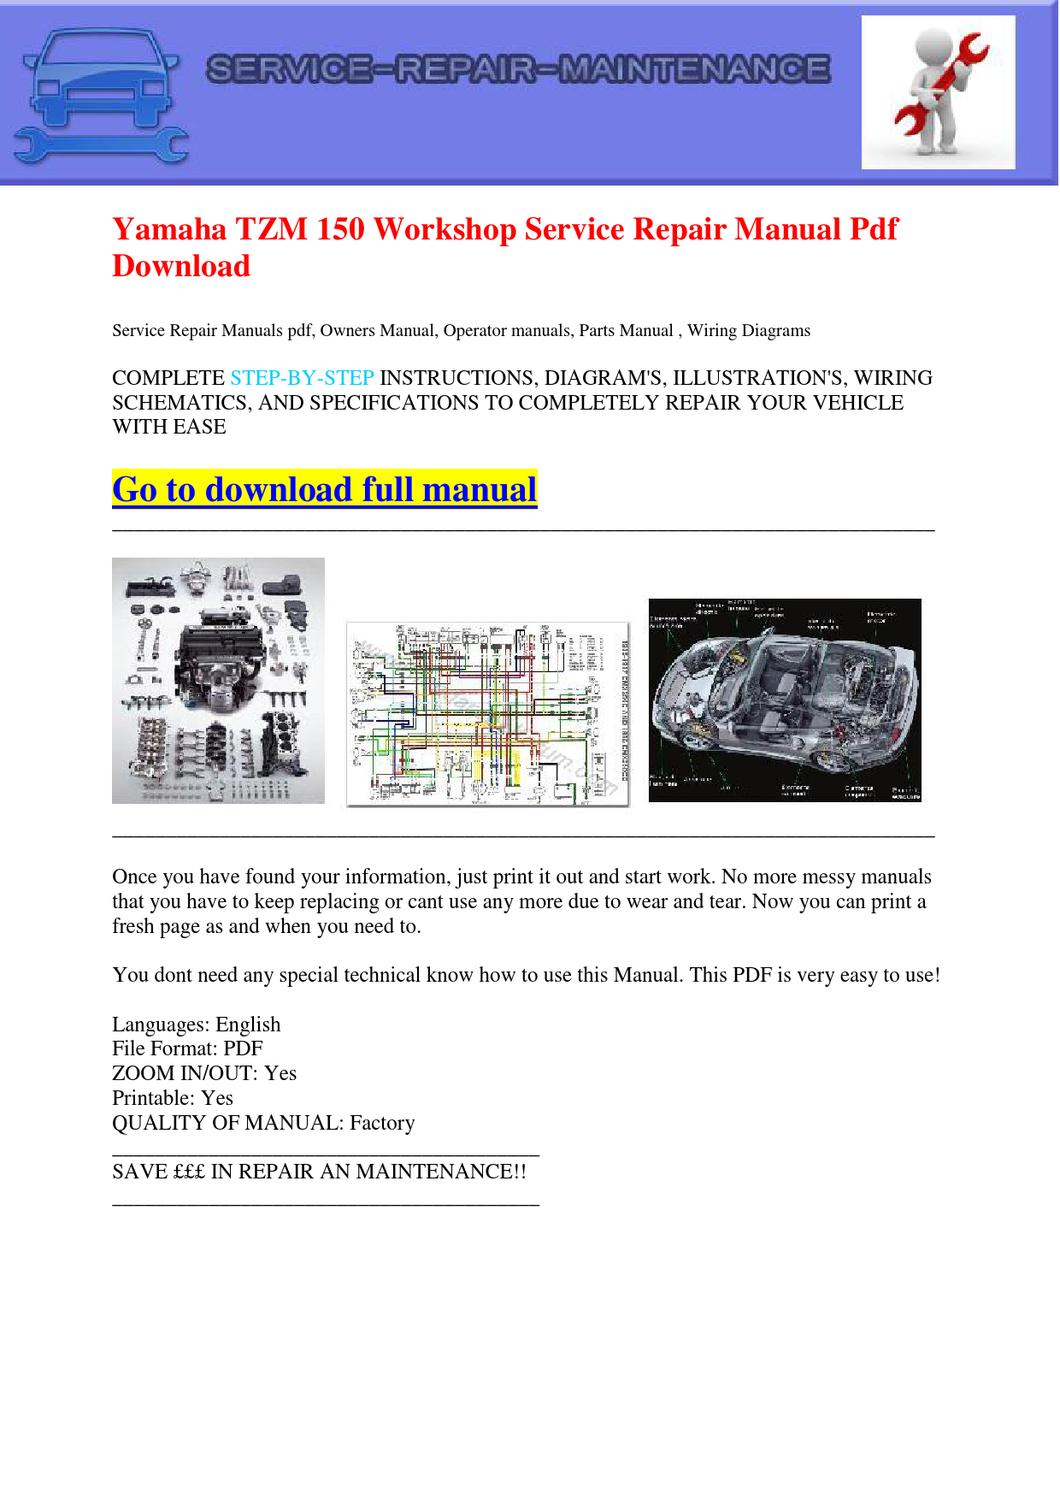 Yamaha Tzm 150 Workshop Service Repair Manual Pdf Download By Dernis Messy Wiring Diagram Castan Issuu